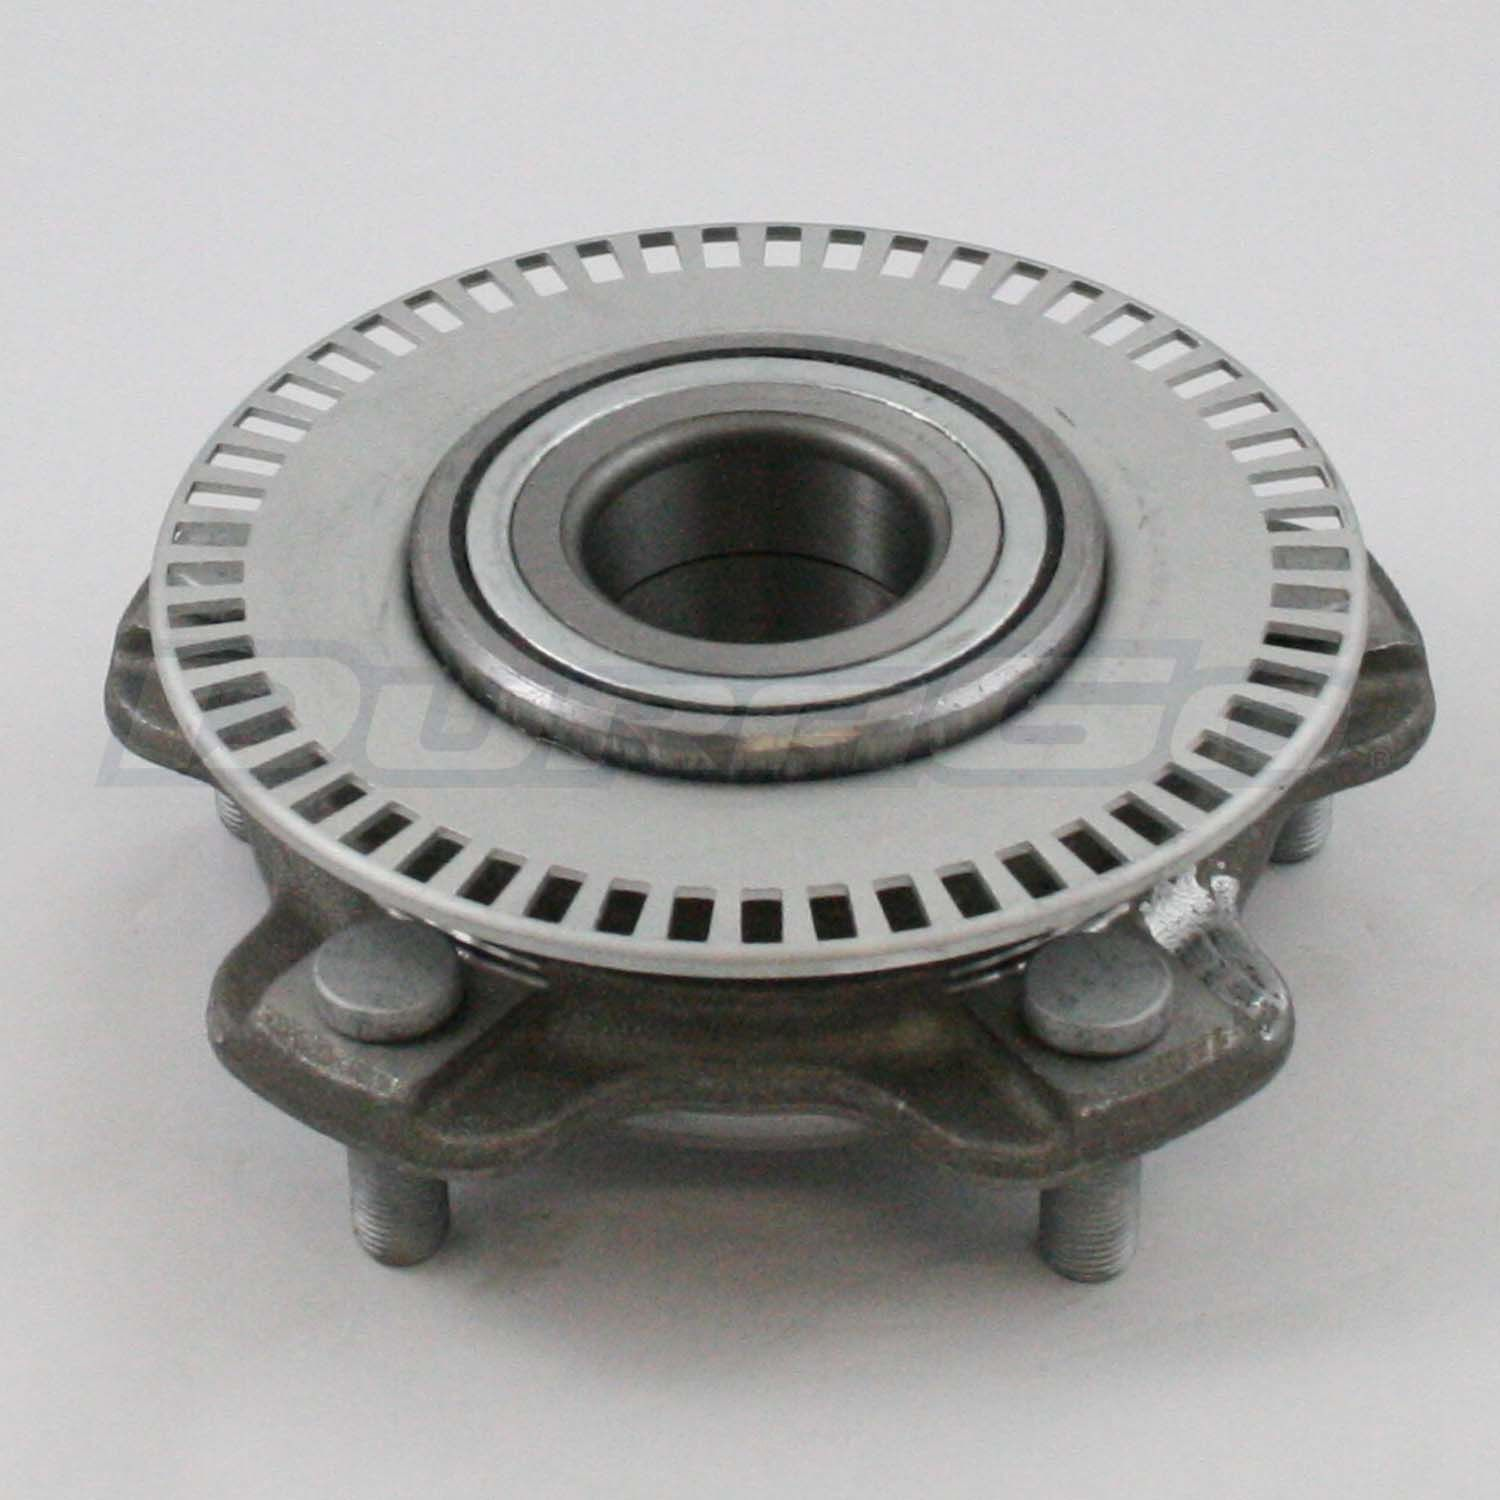 DURAGO - Axle Bearing and Hub Assembly - D48 295-13193